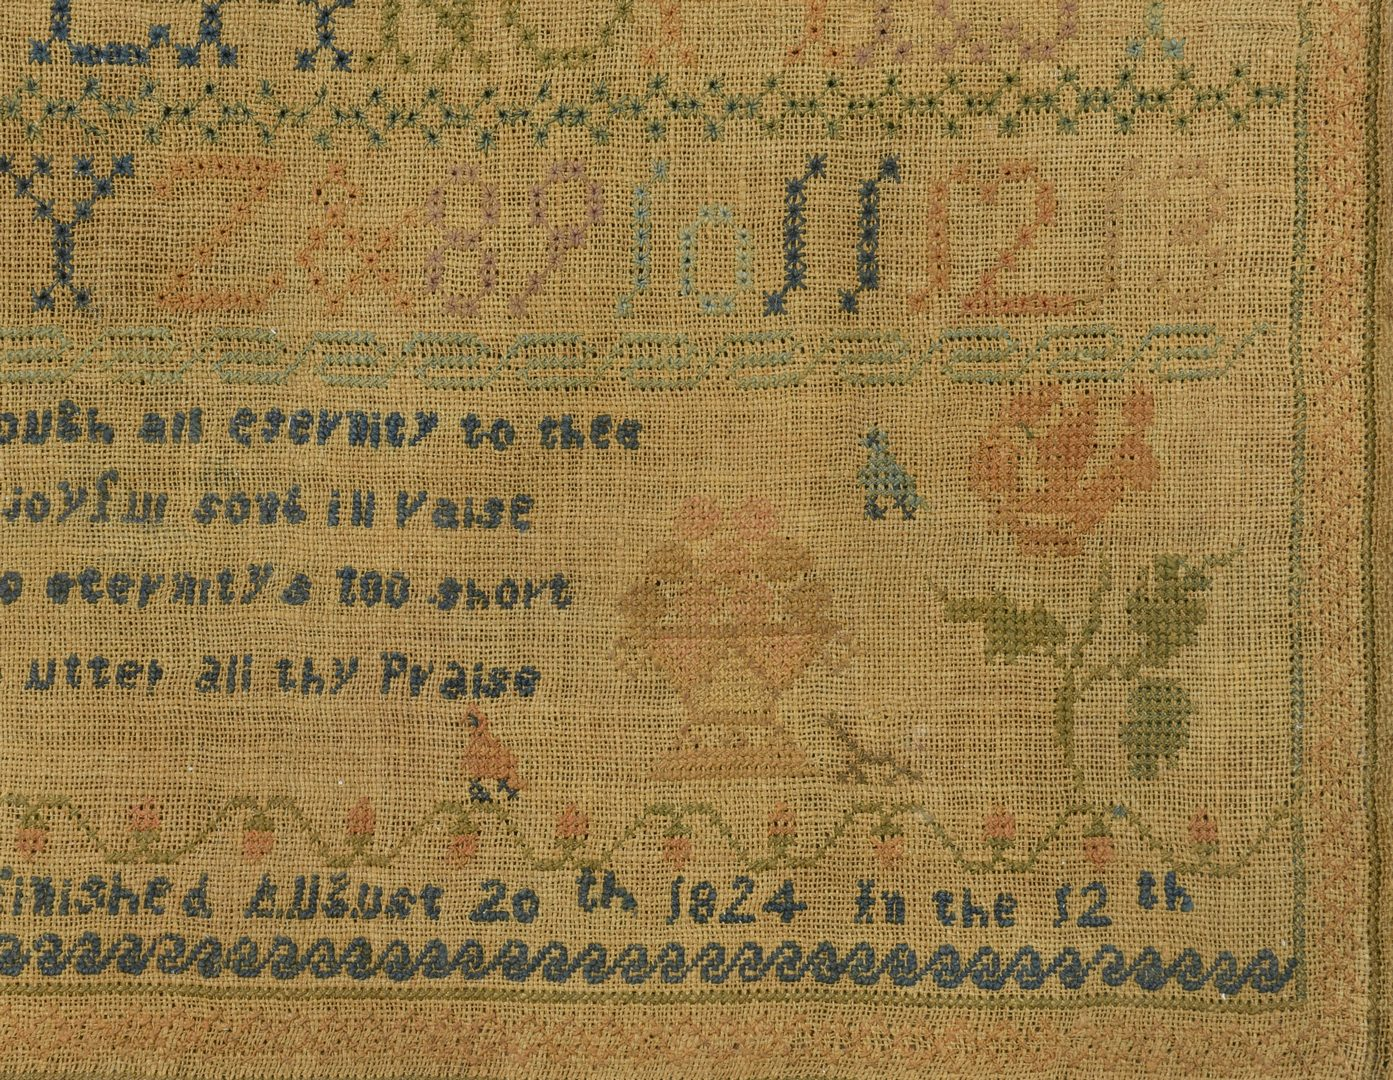 Lot 555: 1824 Needlework Sampler, attrib Kentucky